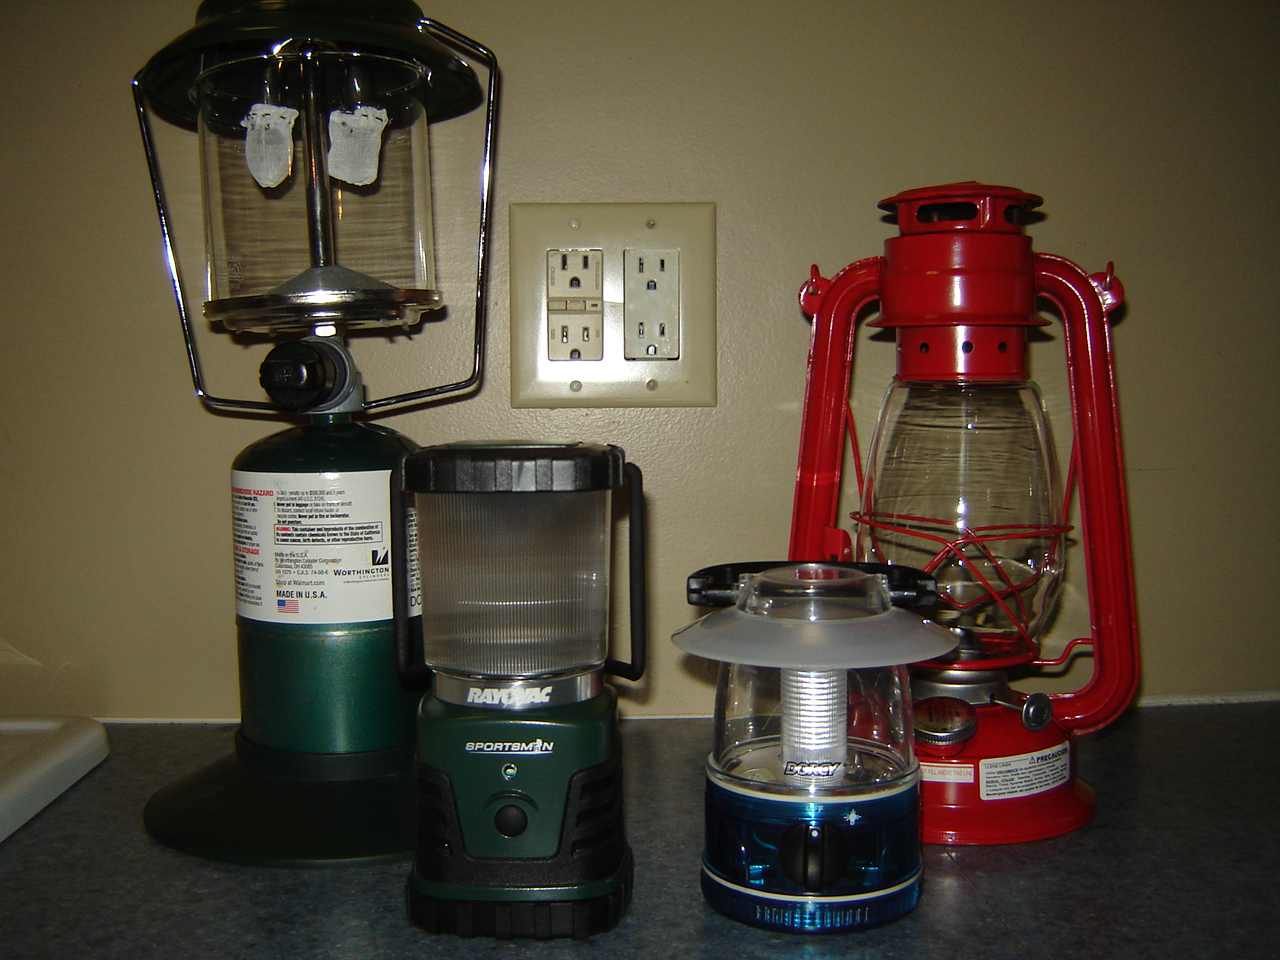 Diy Kerosene Lamp Comparison Of Lanterns Propane Vs Kerosene Vs Battery Powered